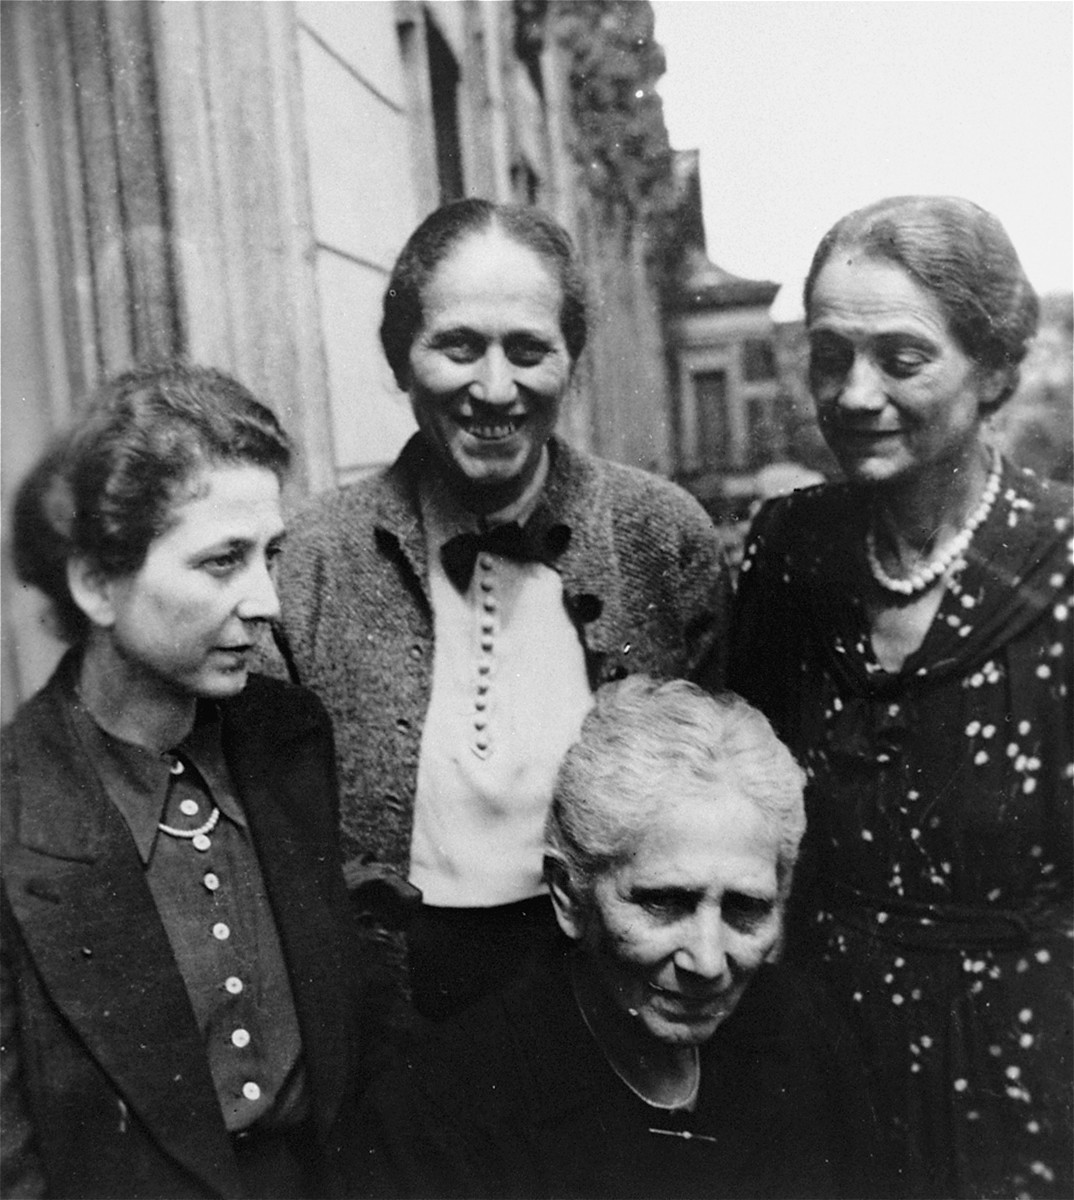 Four Jewish women pose on the balcony of their apartment located on Klopstockstrasse 18 in the Tiergarten, Berlin.   Pictured standing from the left are: Lydia Ellgass,  Kaethe (Gottschalk) Knipfer and Nanny (Gottschalk) Lewin.  Bertha (Wolffberg) Gottschalk is in the front.